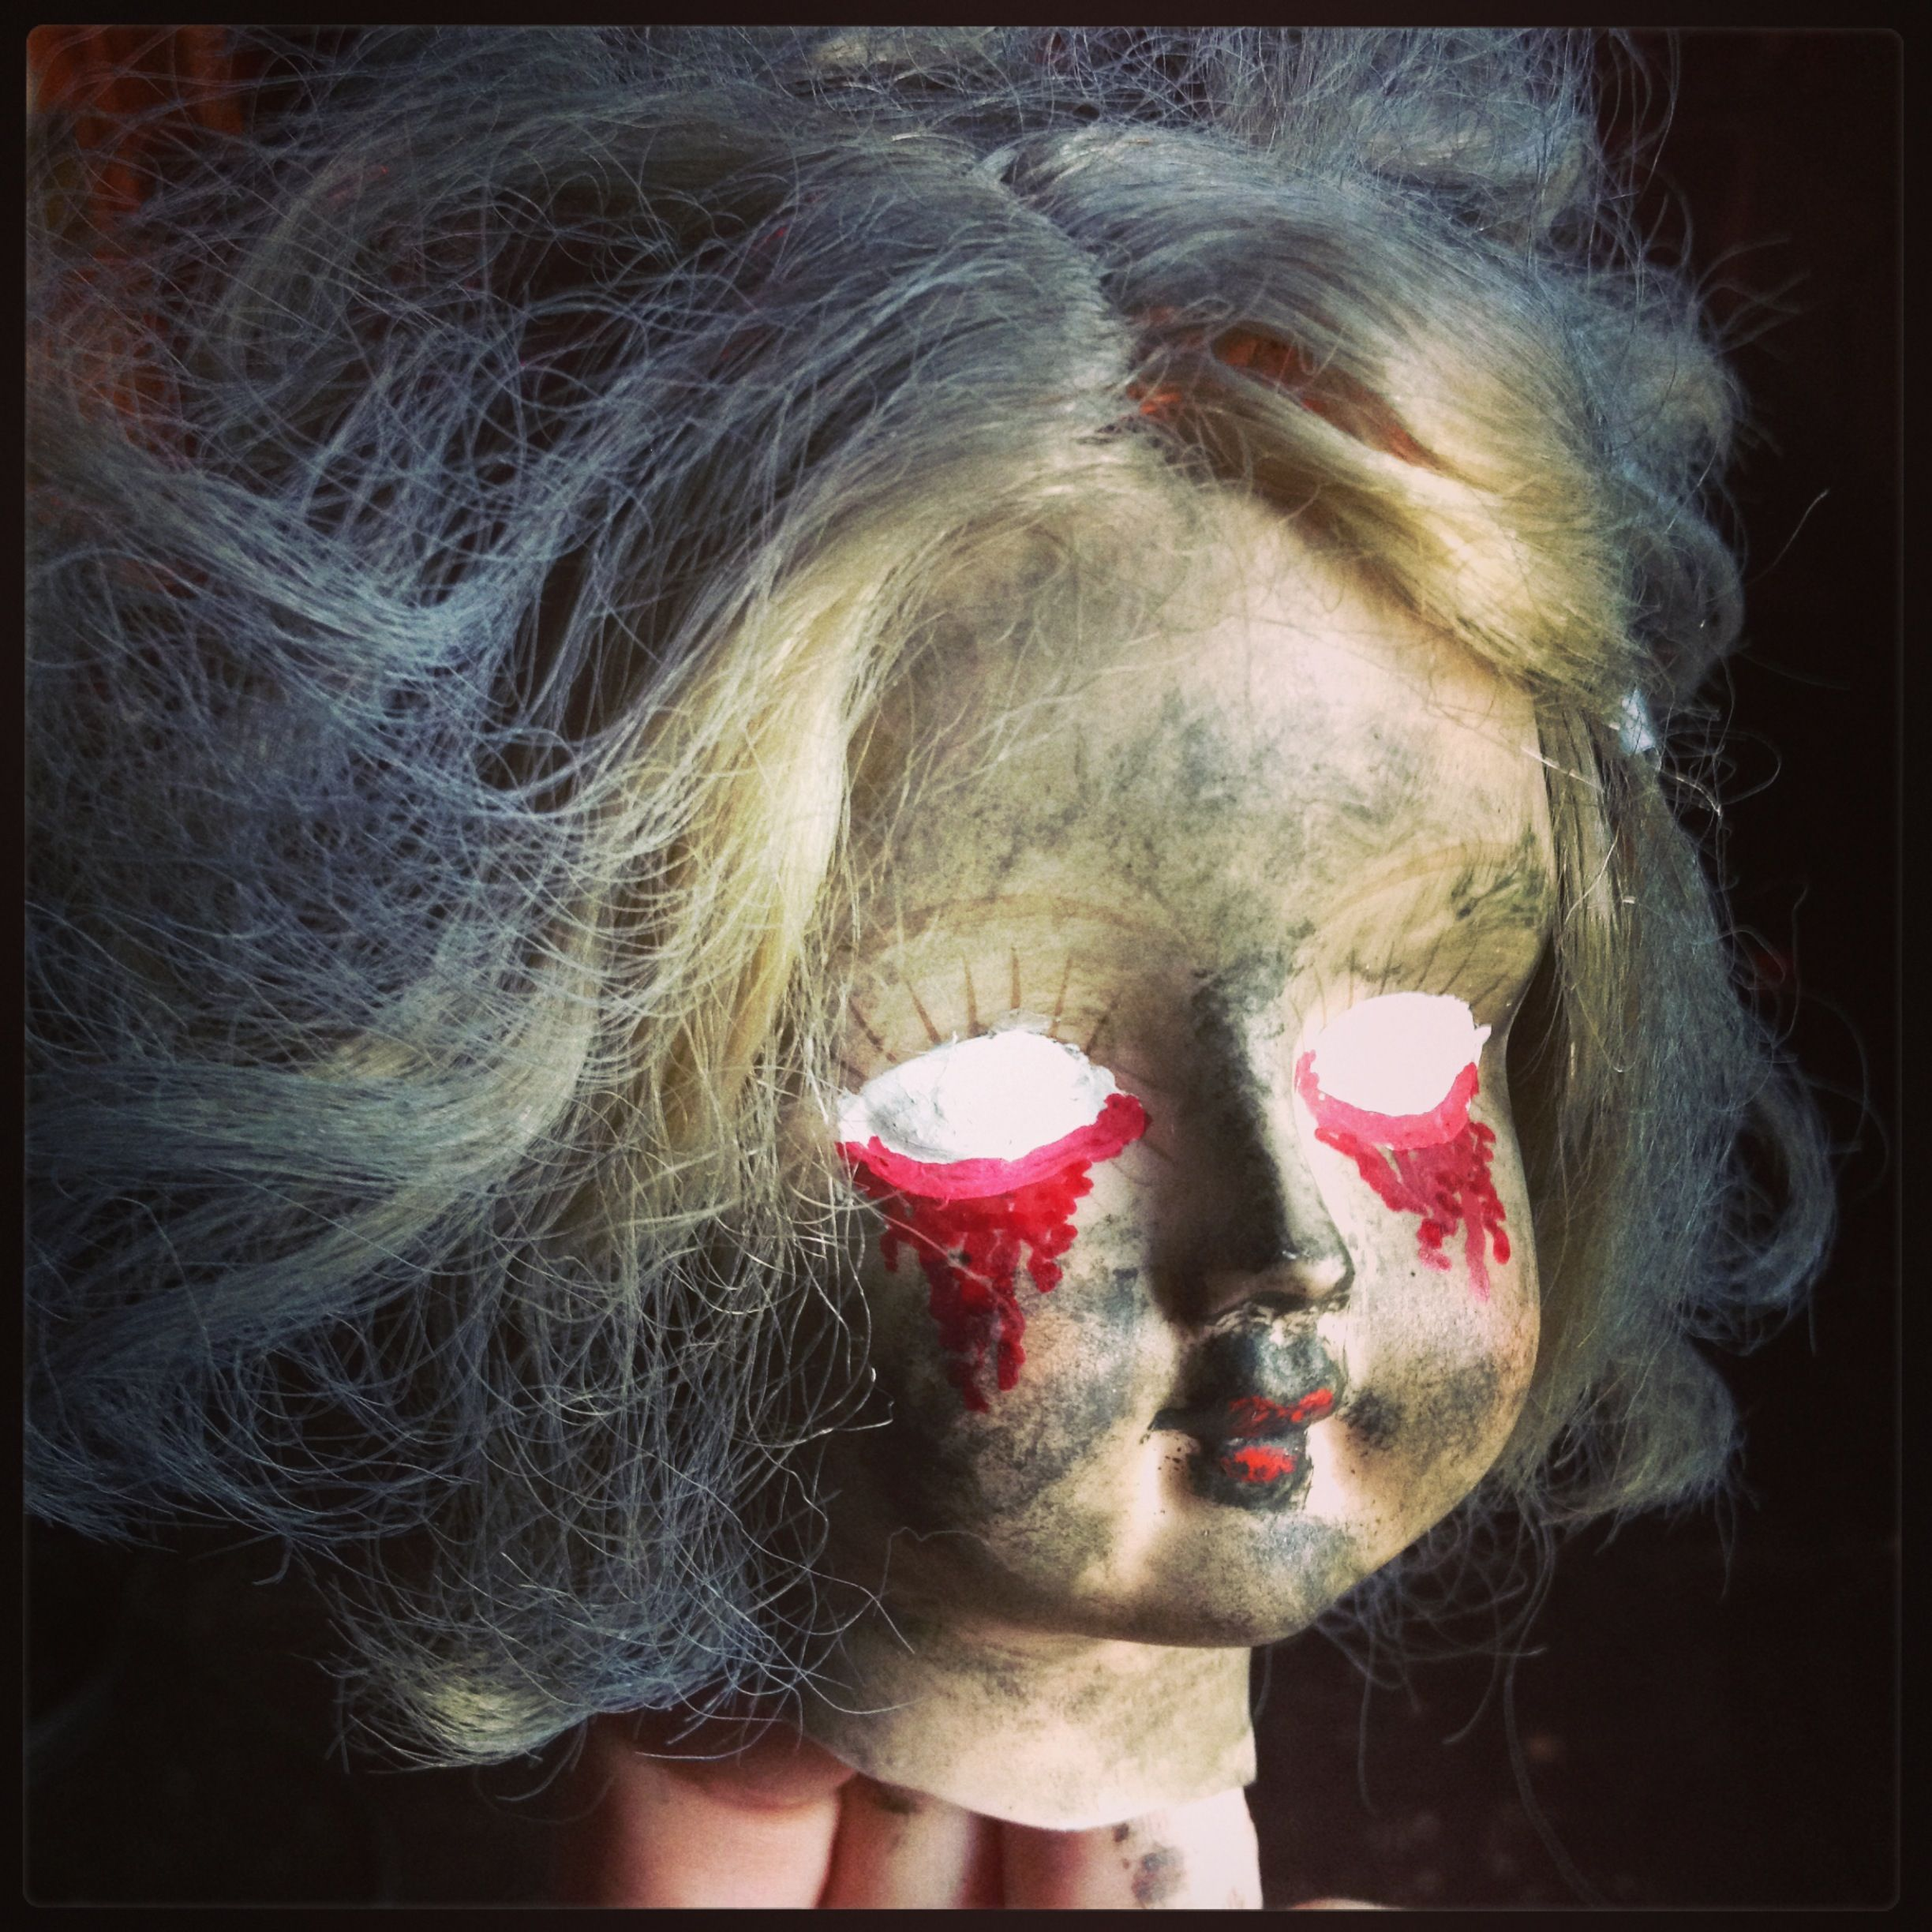 Creepy Halloween dolly, made from broken porcelain